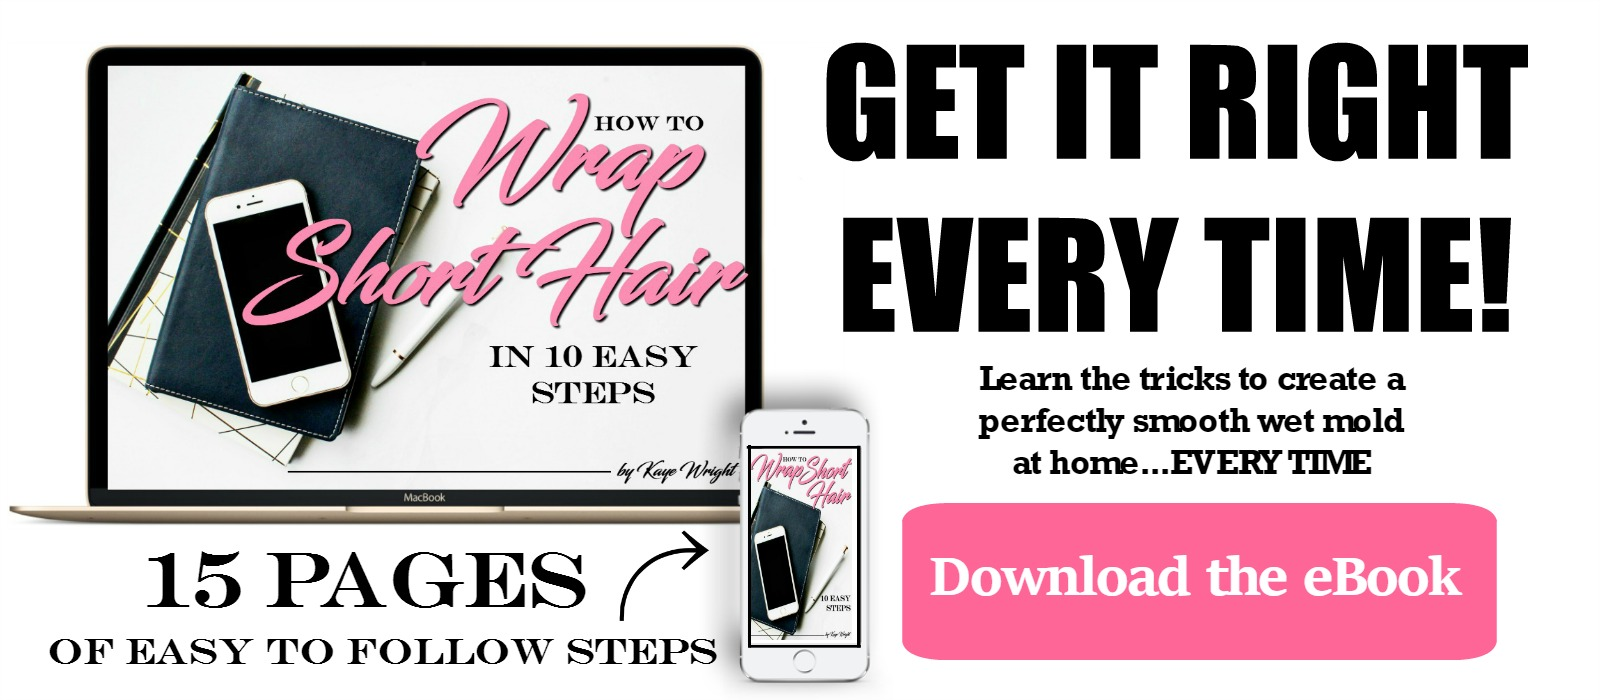 how to wrap short hair ebook